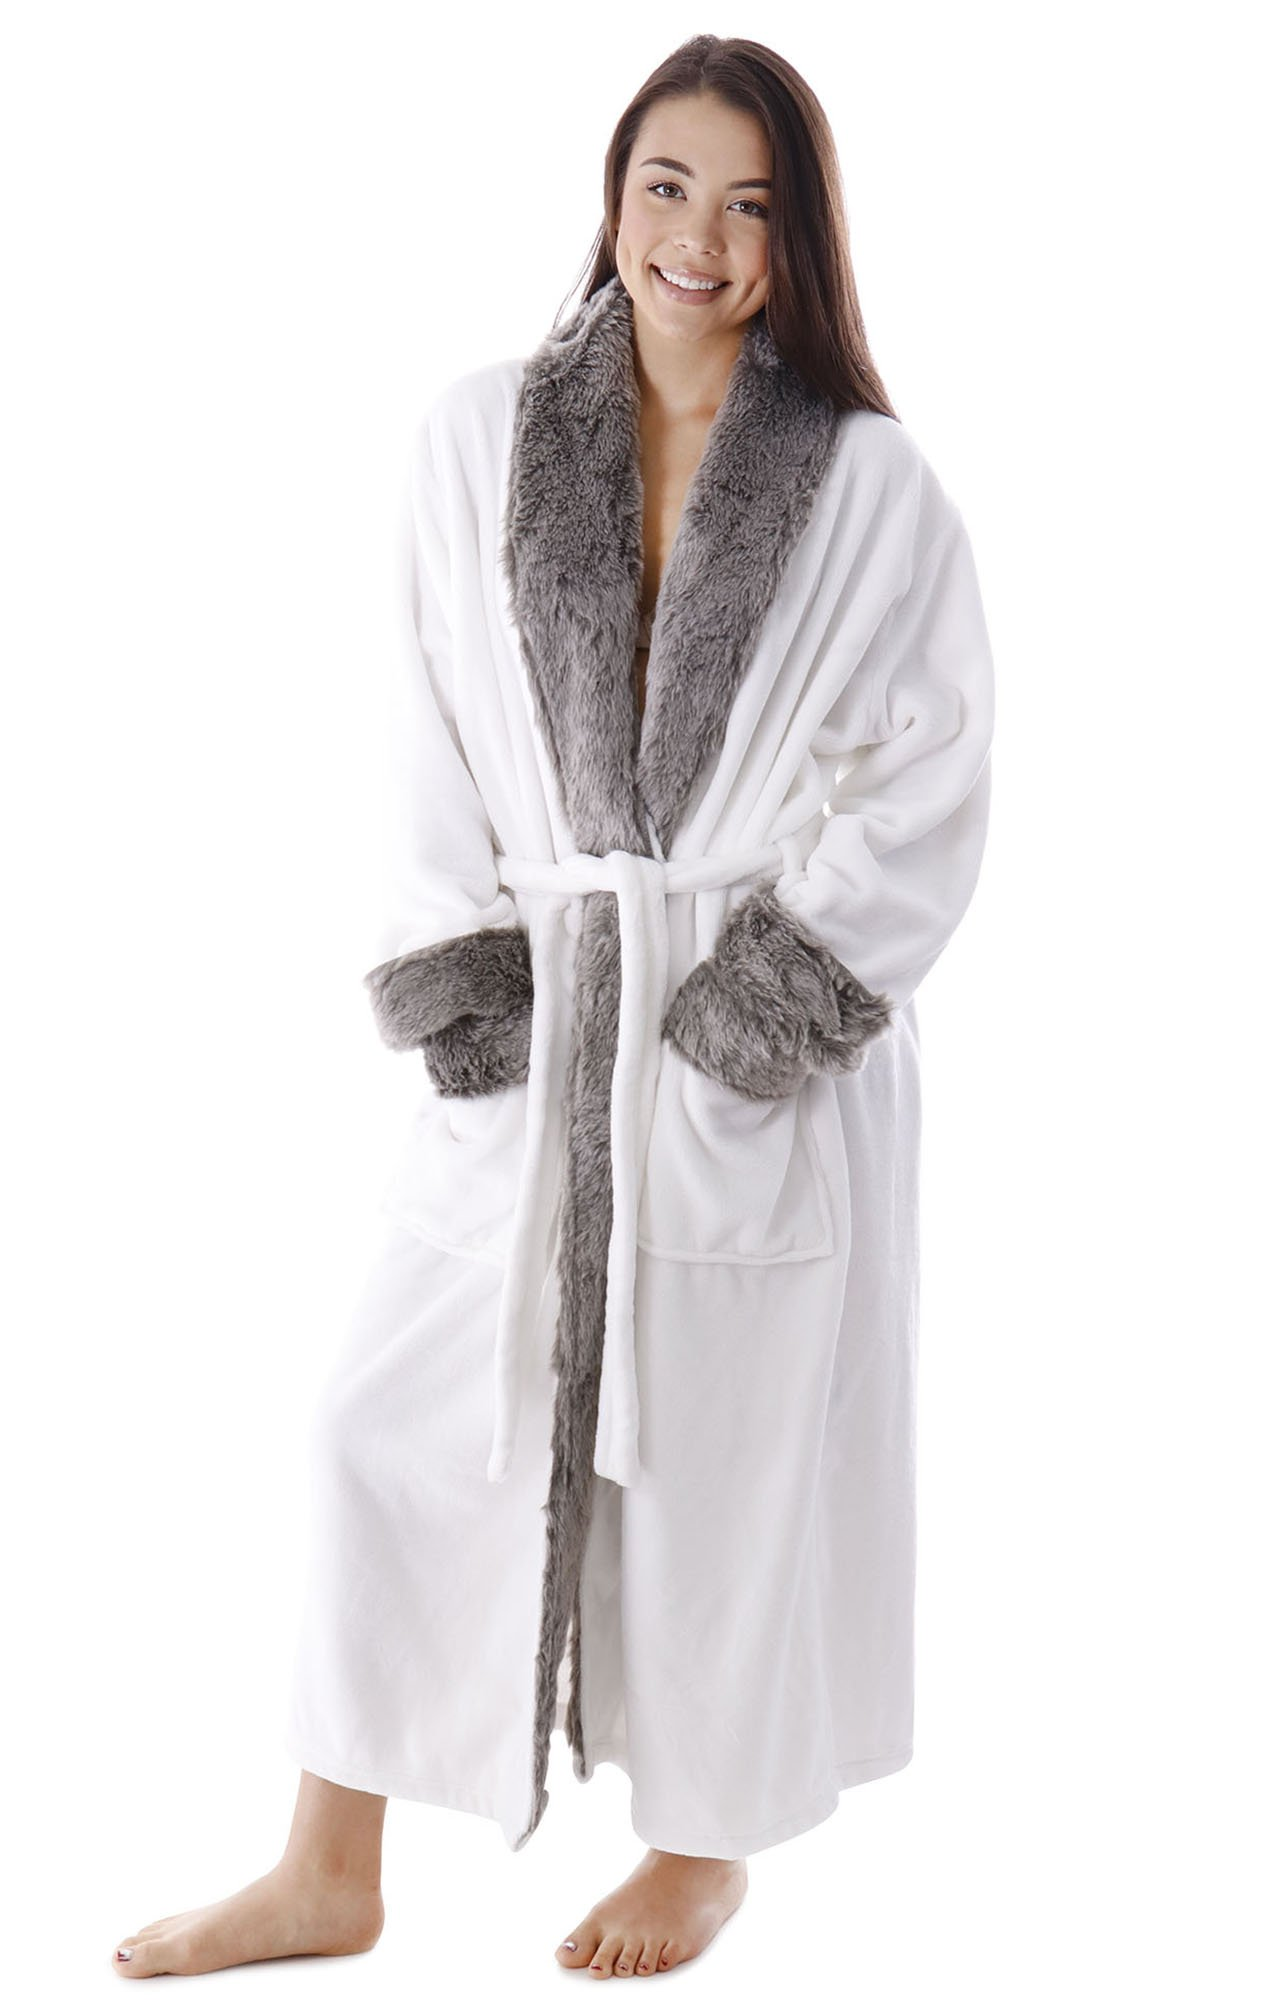 BURKLETT Robes for Women Men Faux Fur Trim Fleece Collar Shawl Pocketed  Bathrobe 3f4db85e3